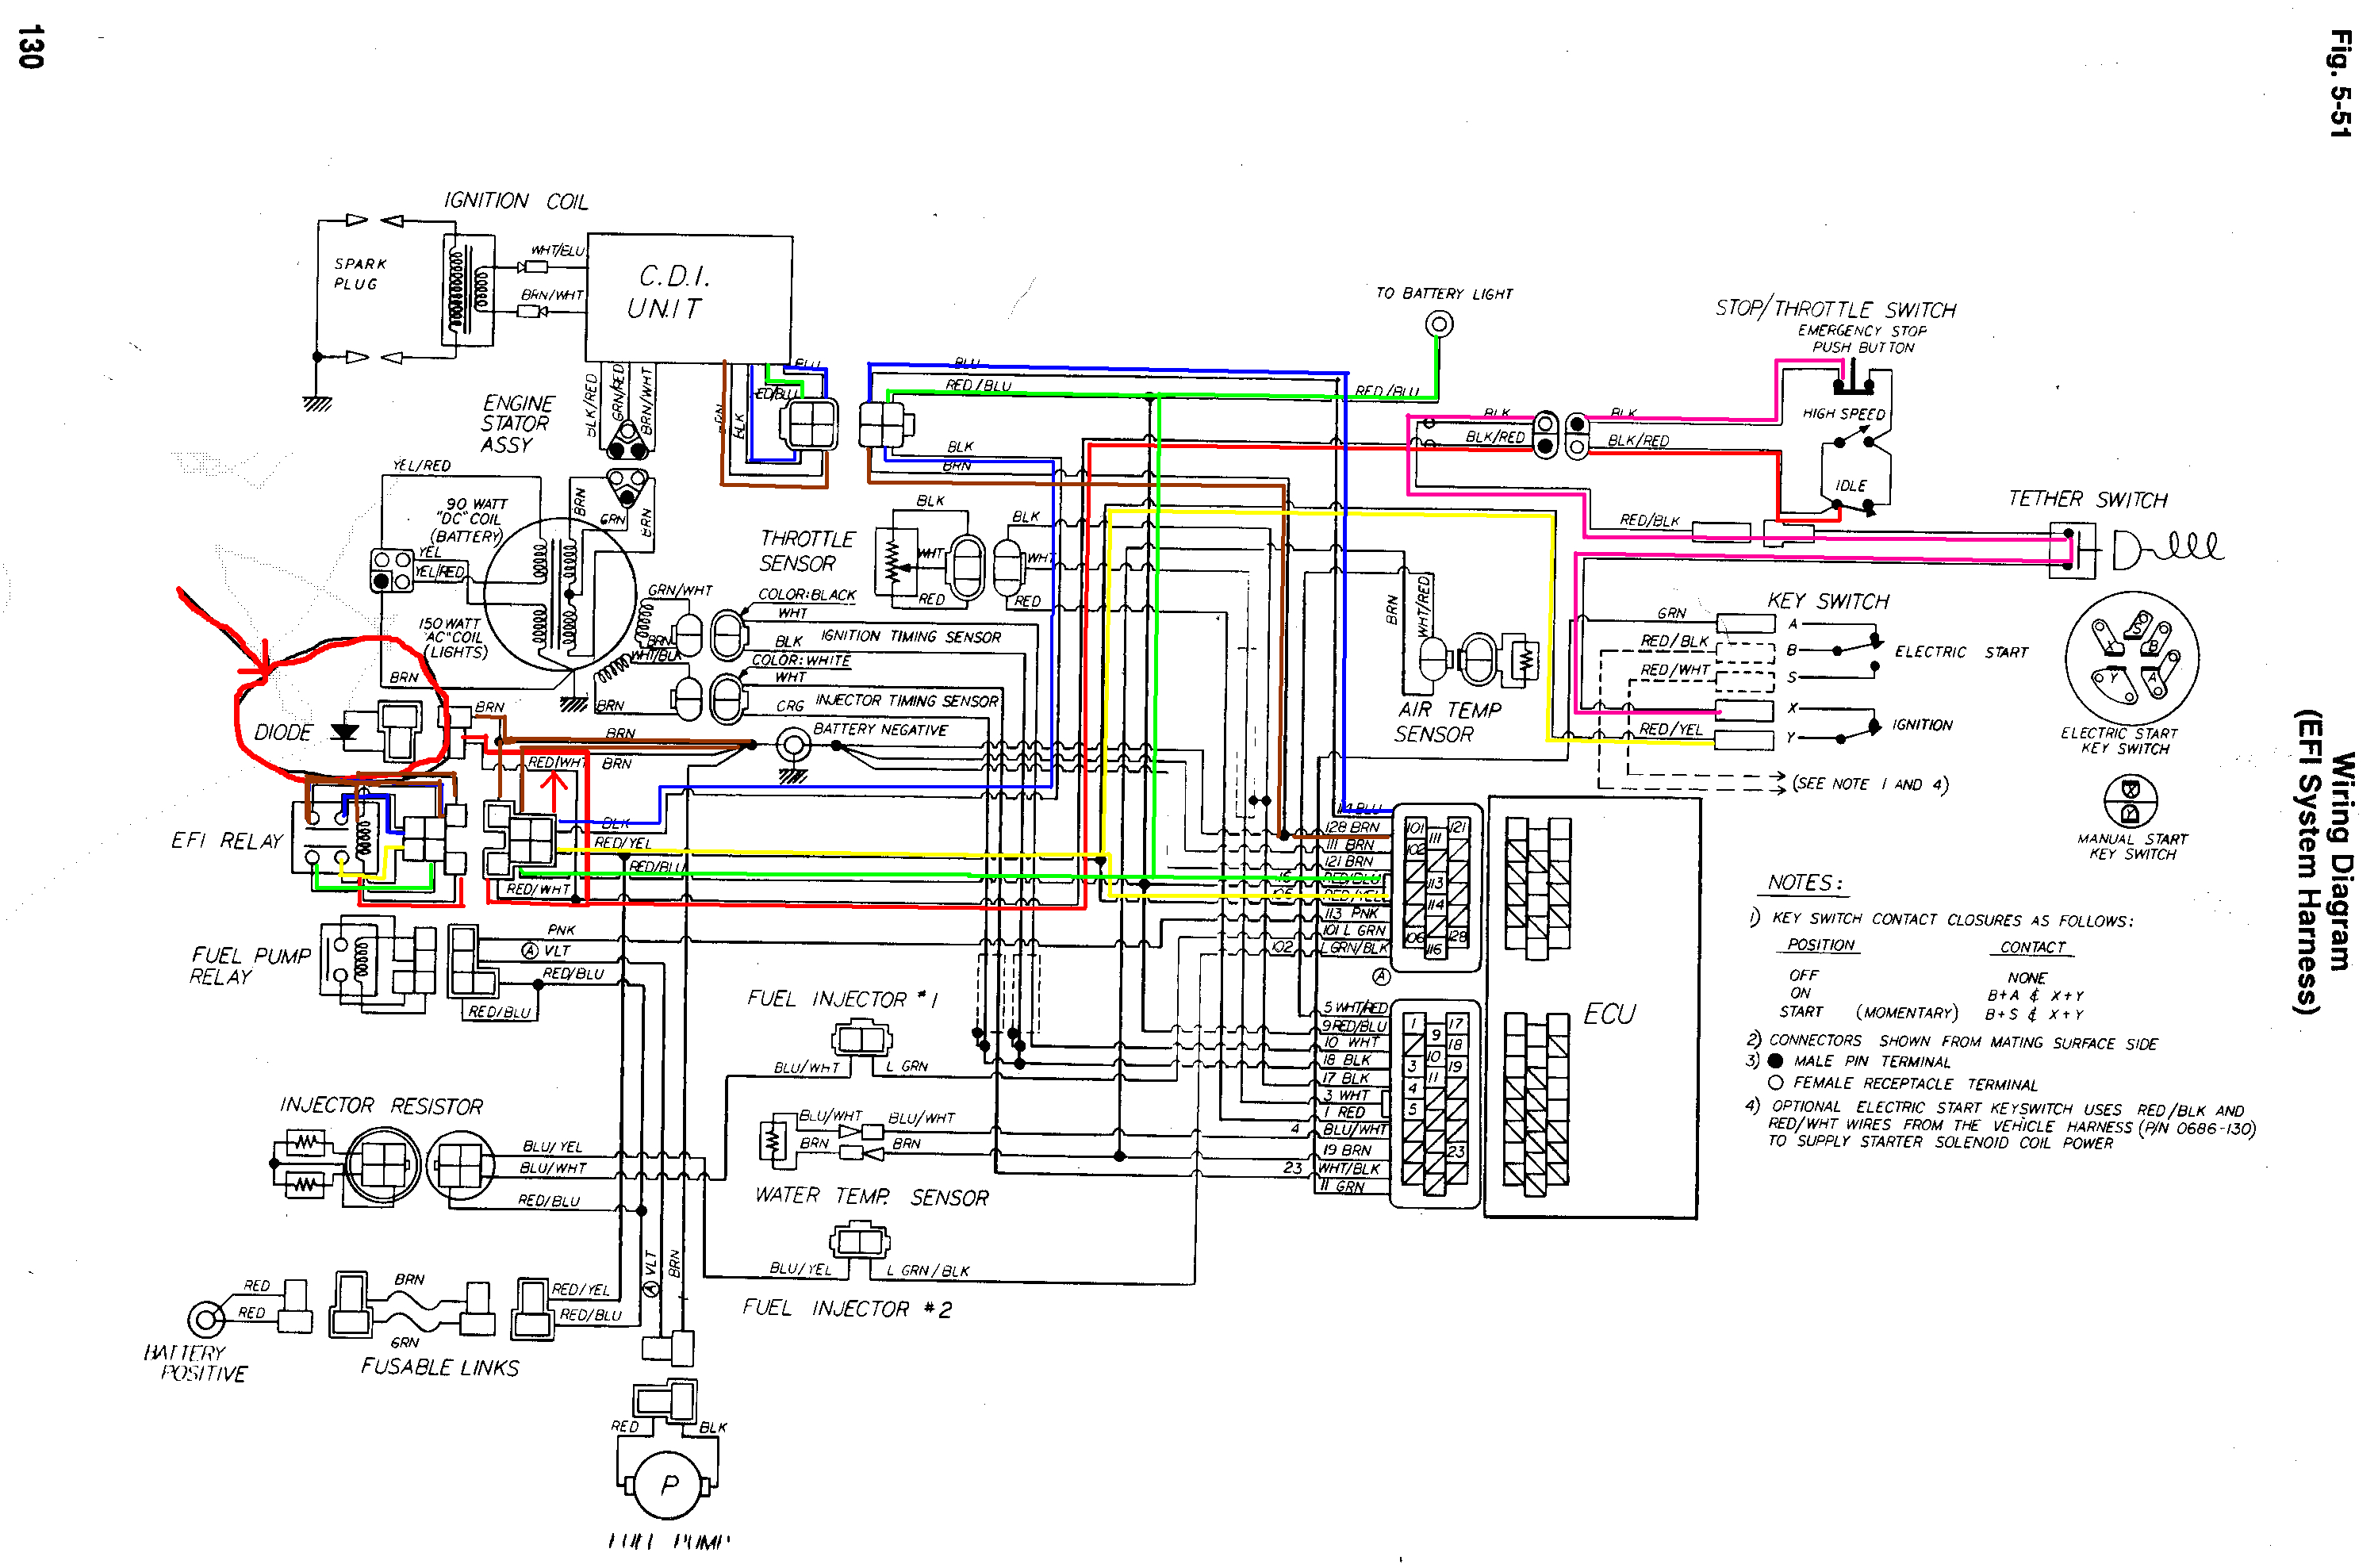 daihatsu transmission diagrams daihatsu circuit diagrams wiring daihatsu transmission diagrams